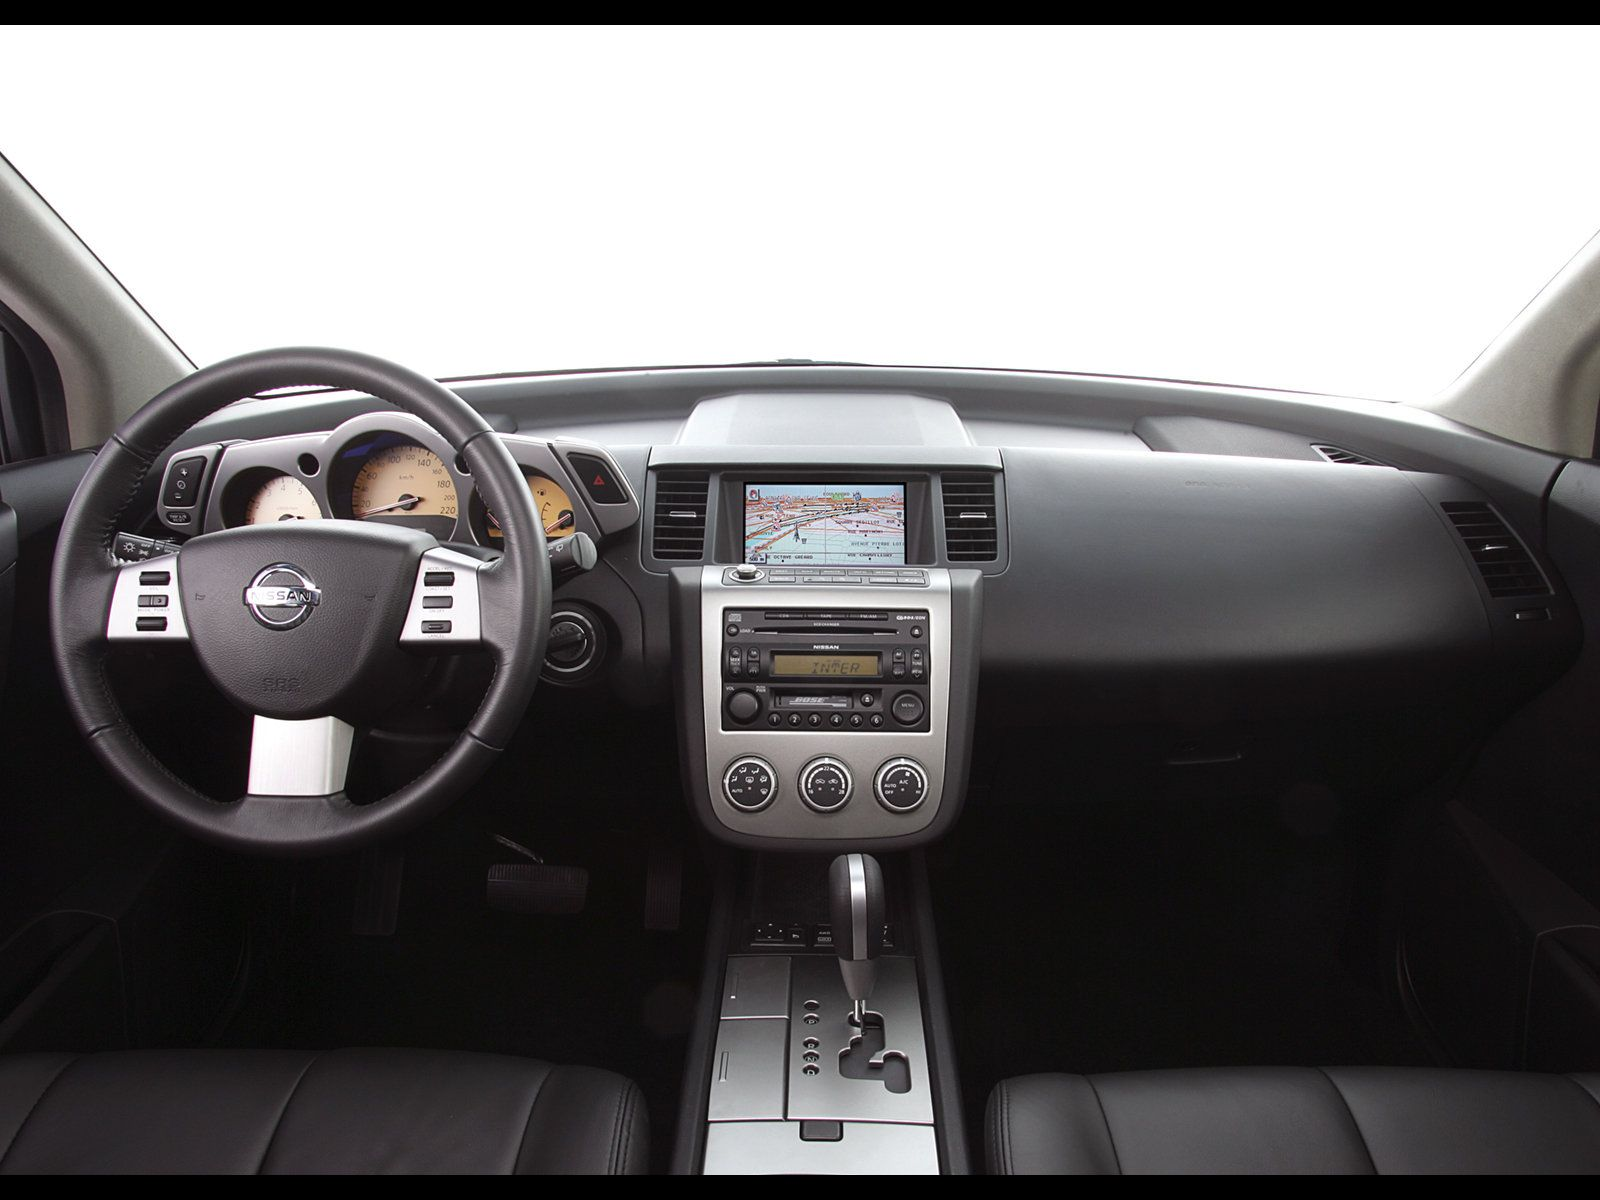 Nissan Murano Android In Dash Car Stereo Navigation Smarty Trend